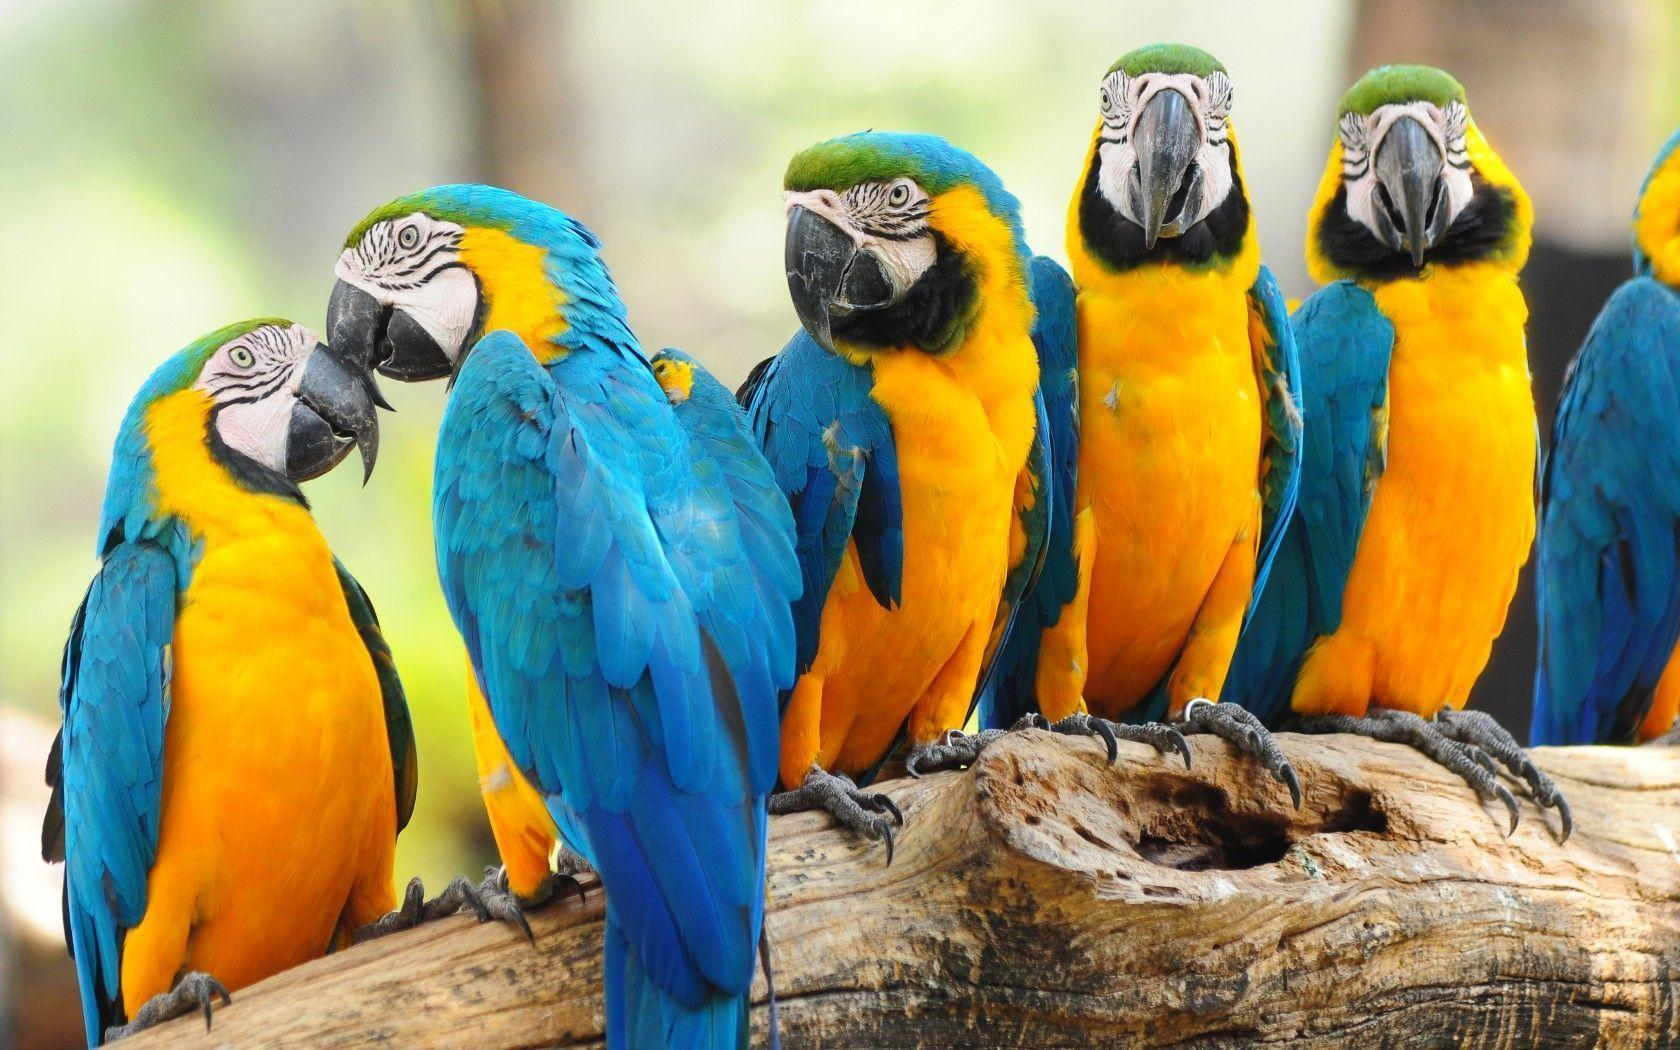 Macaw Parrot Wallpapers - 1680x1050 - 413150